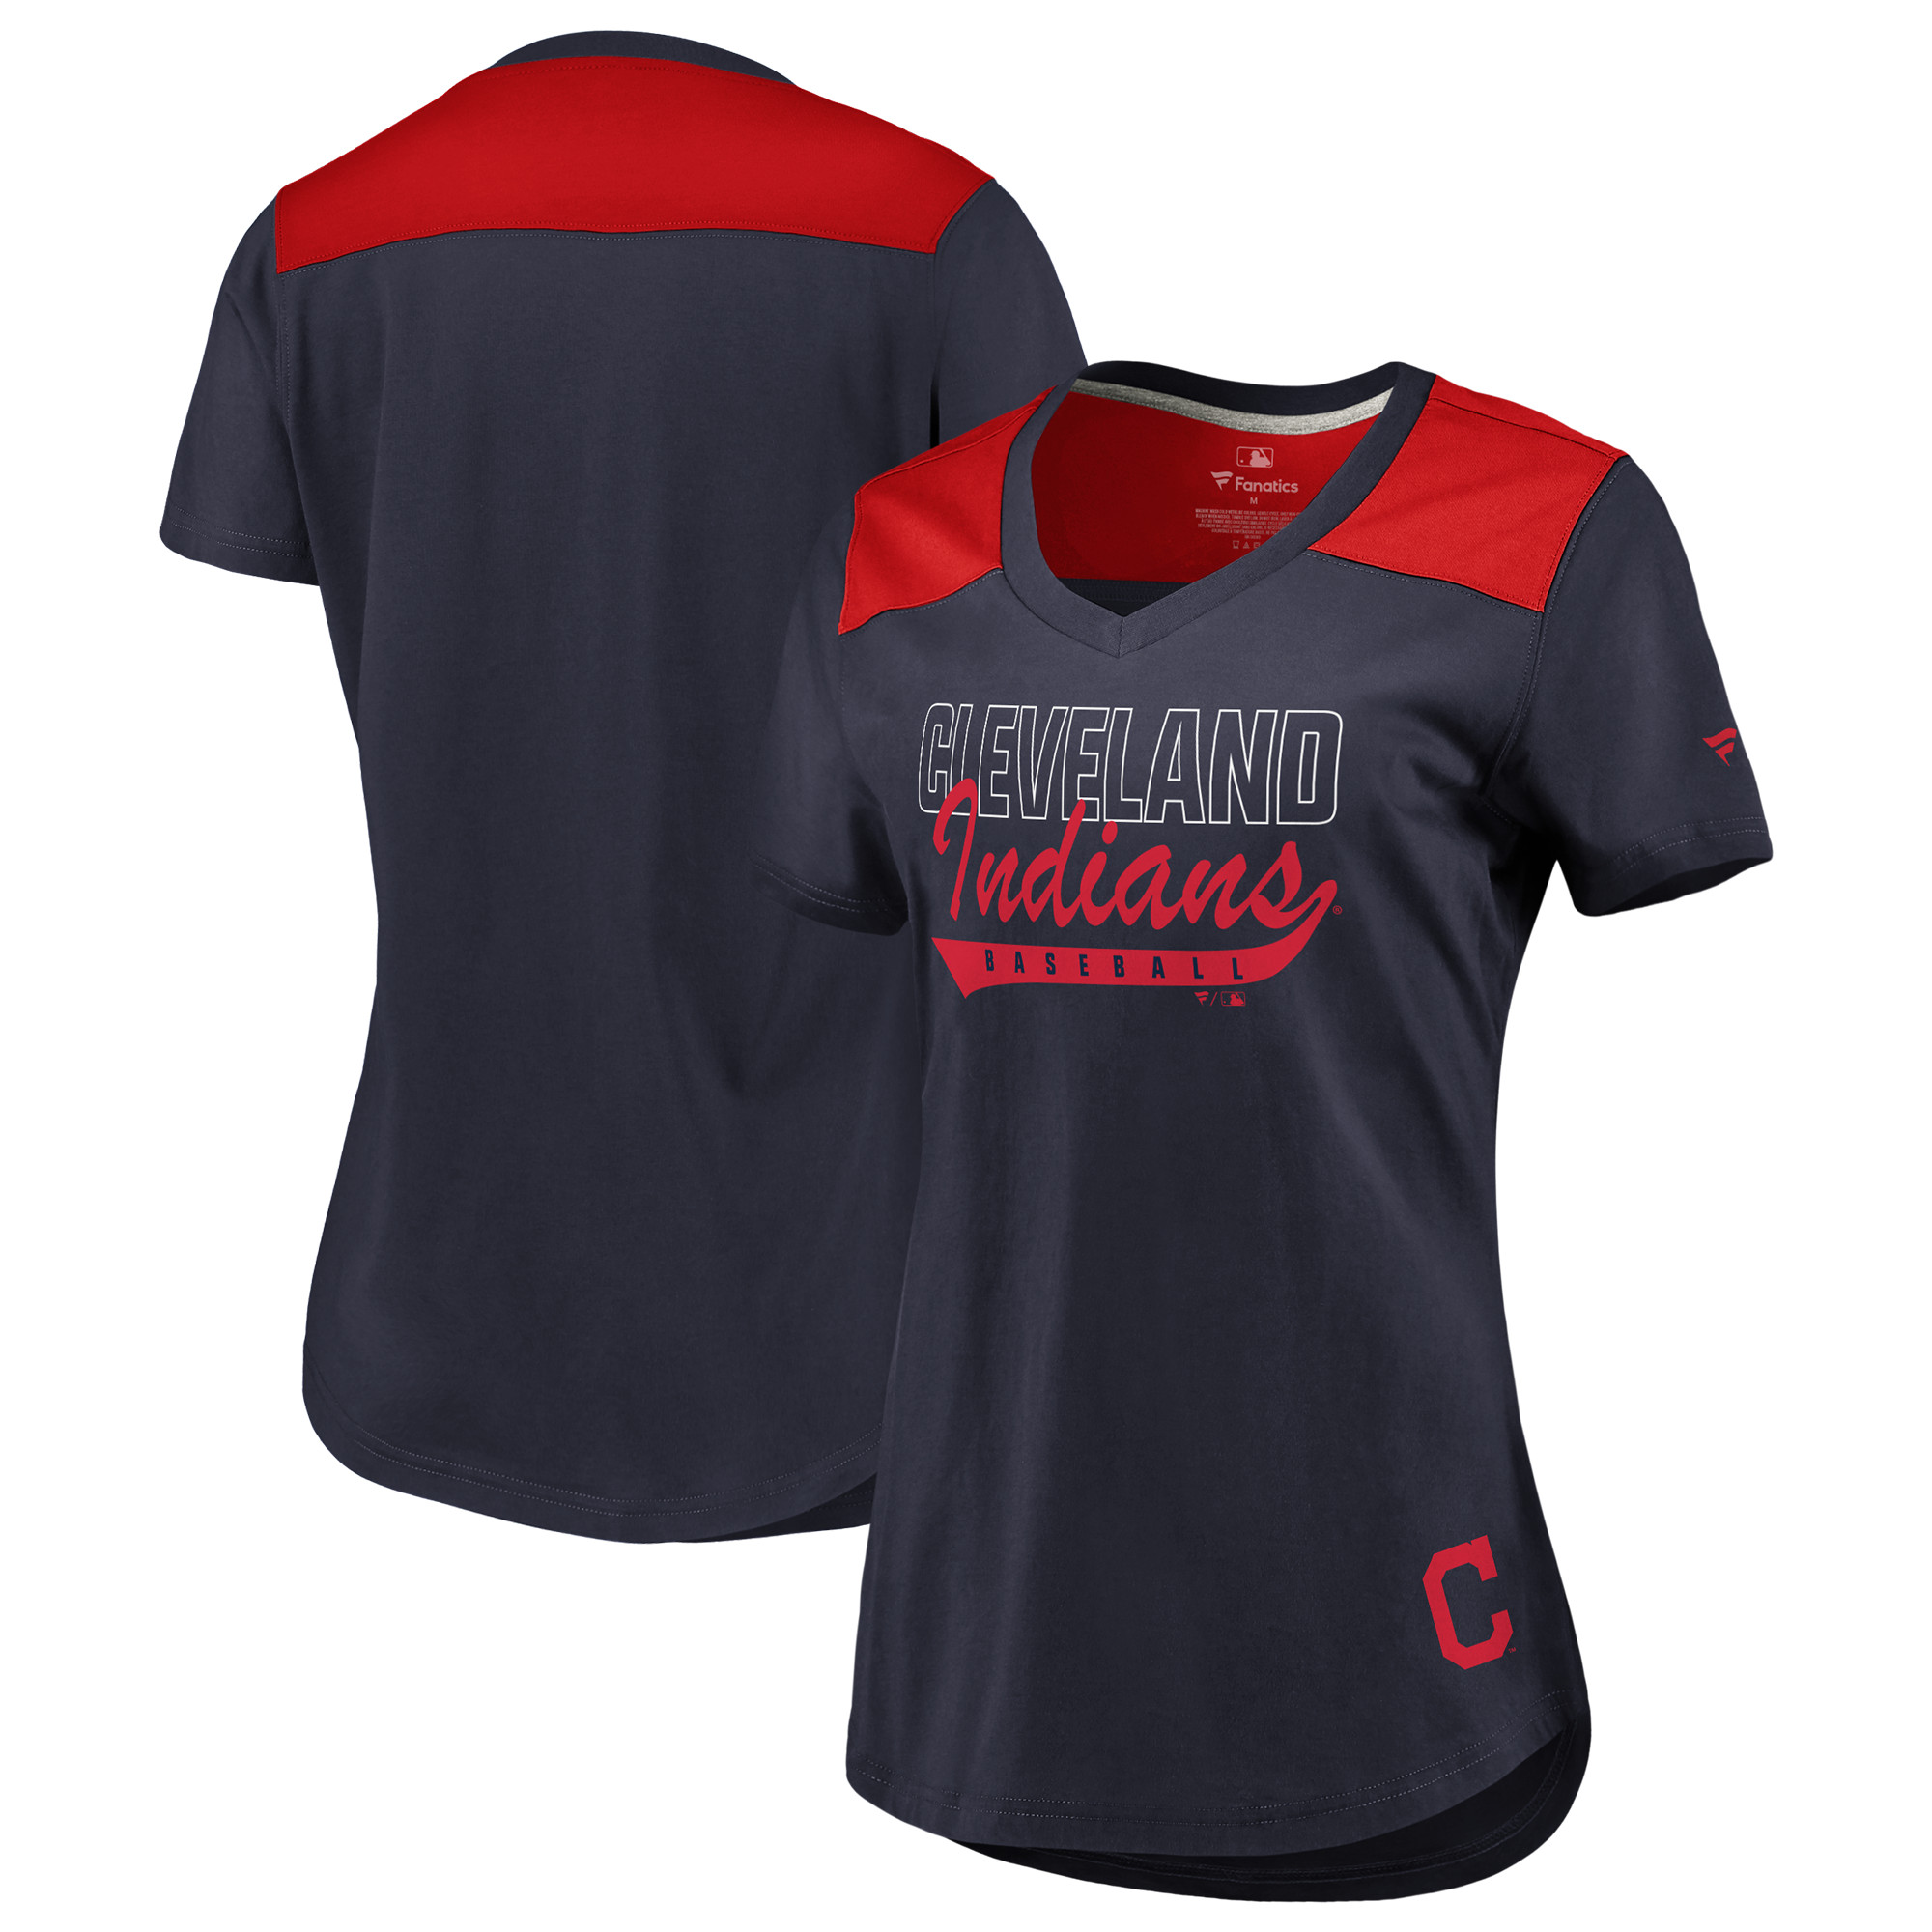 Cleveland Indians Fanatics Branded Women's Iconic V-Neck T-Shirt - Navy/Red